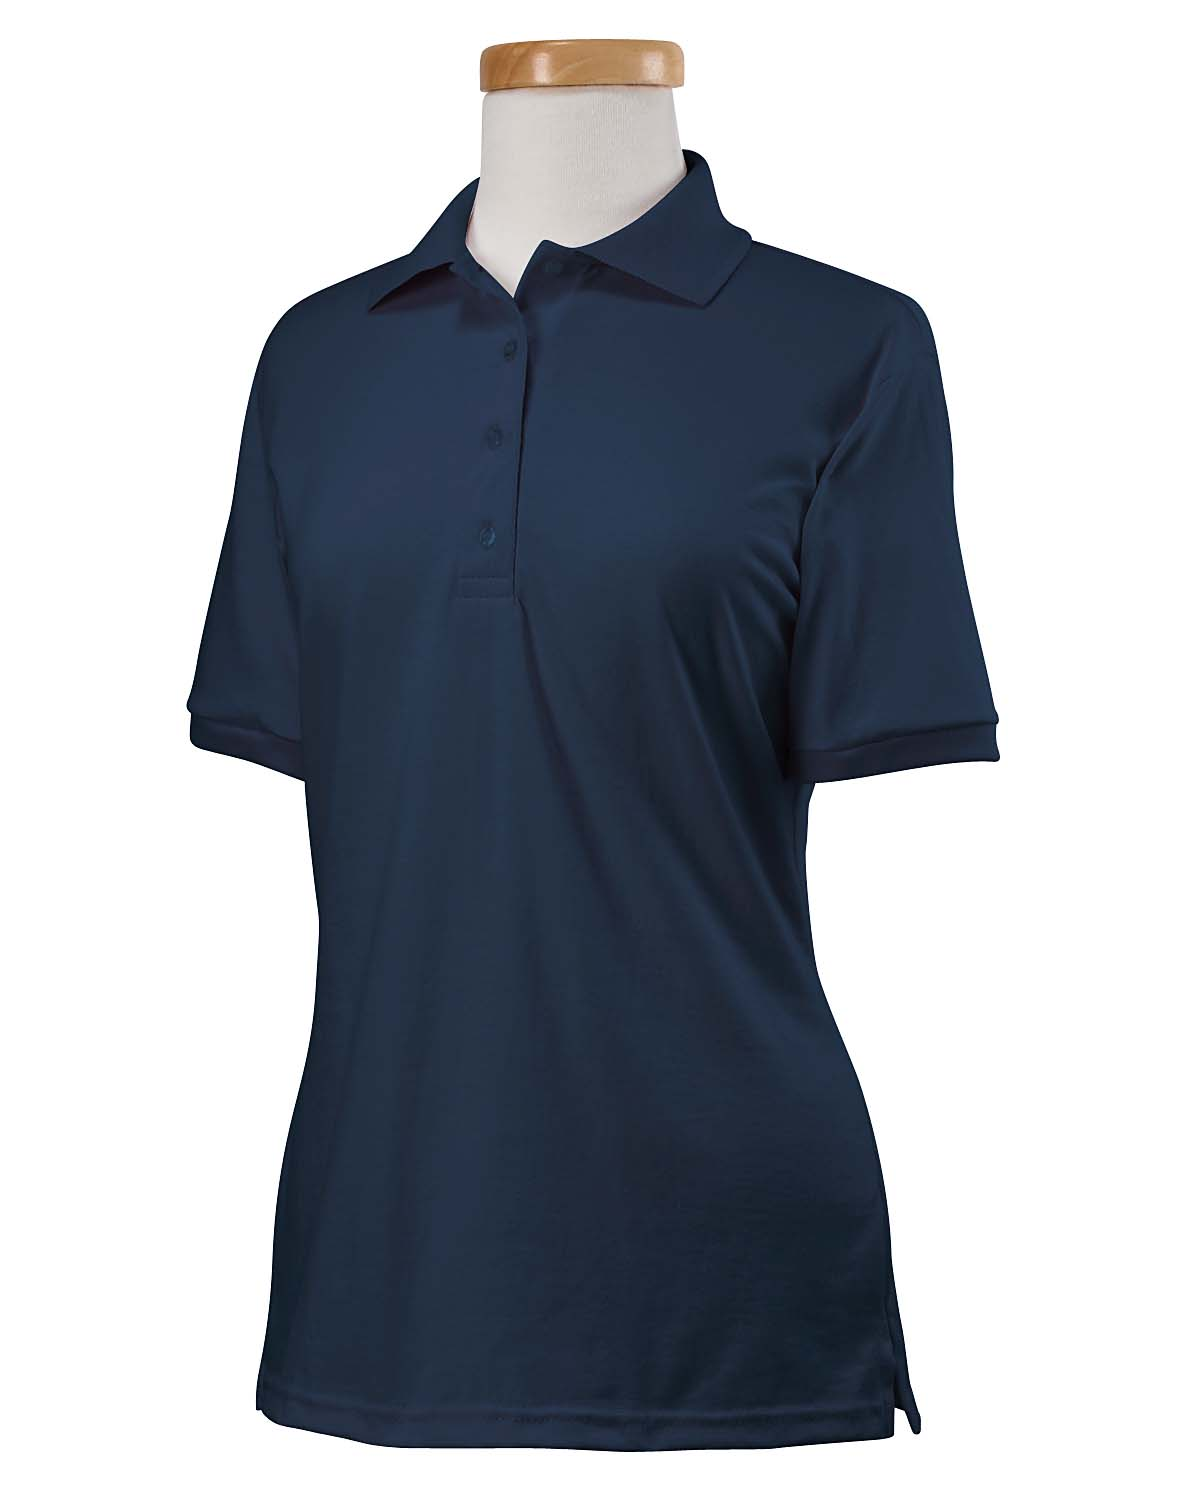 Ladies 5.6 Oz. Spotshield™ Jersey Polo-Jerzees